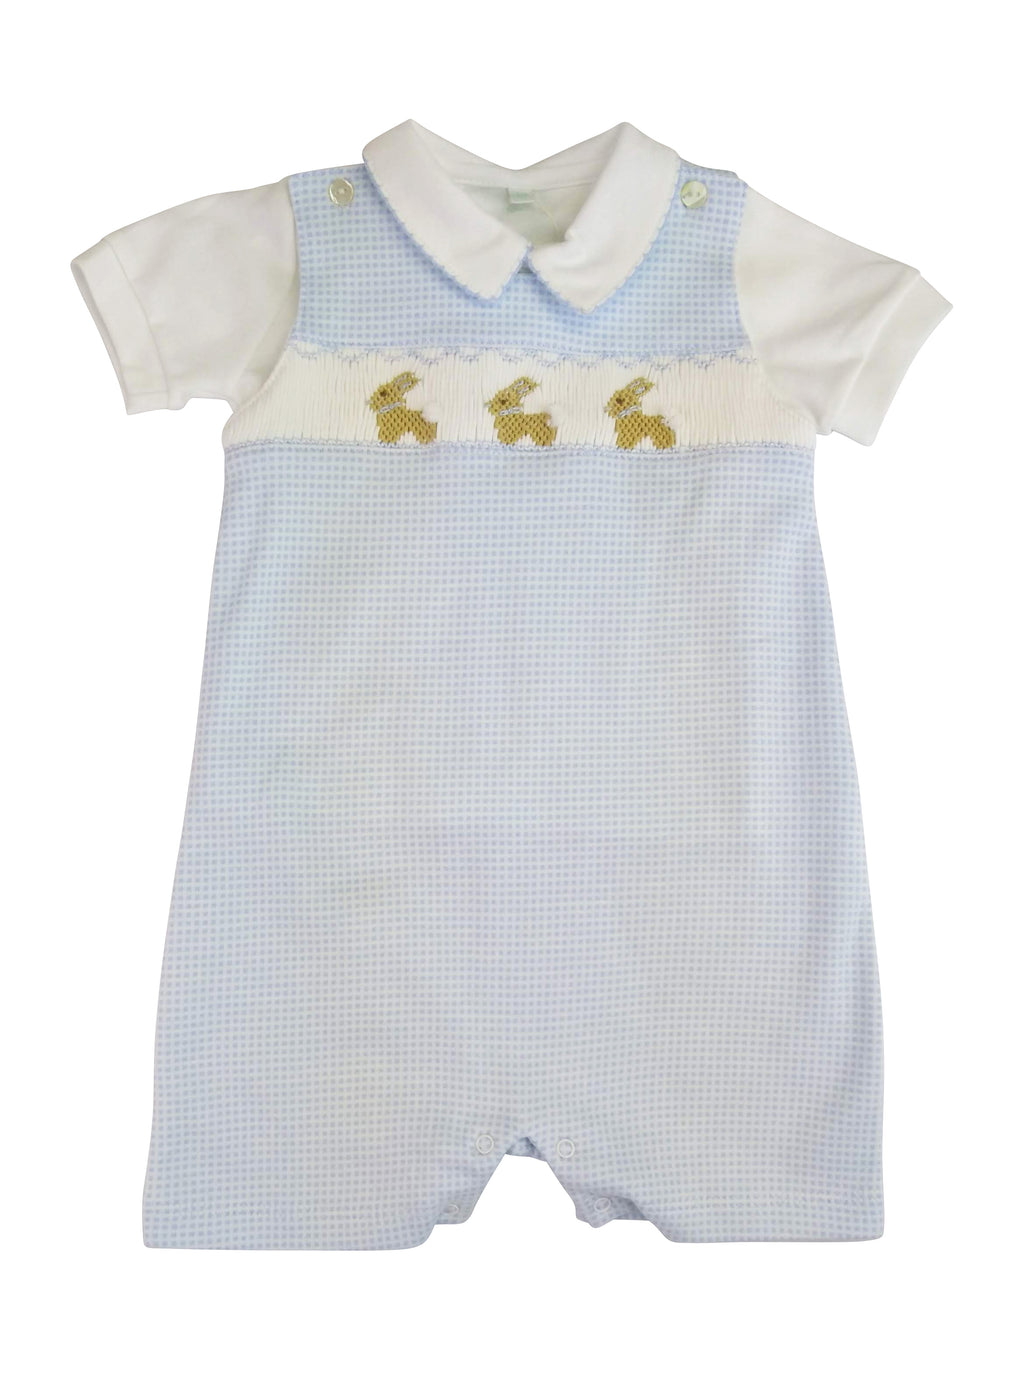 Baby Boy's Blue Bunny Checkered Romper - Little Threads Inc. Children's Clothing